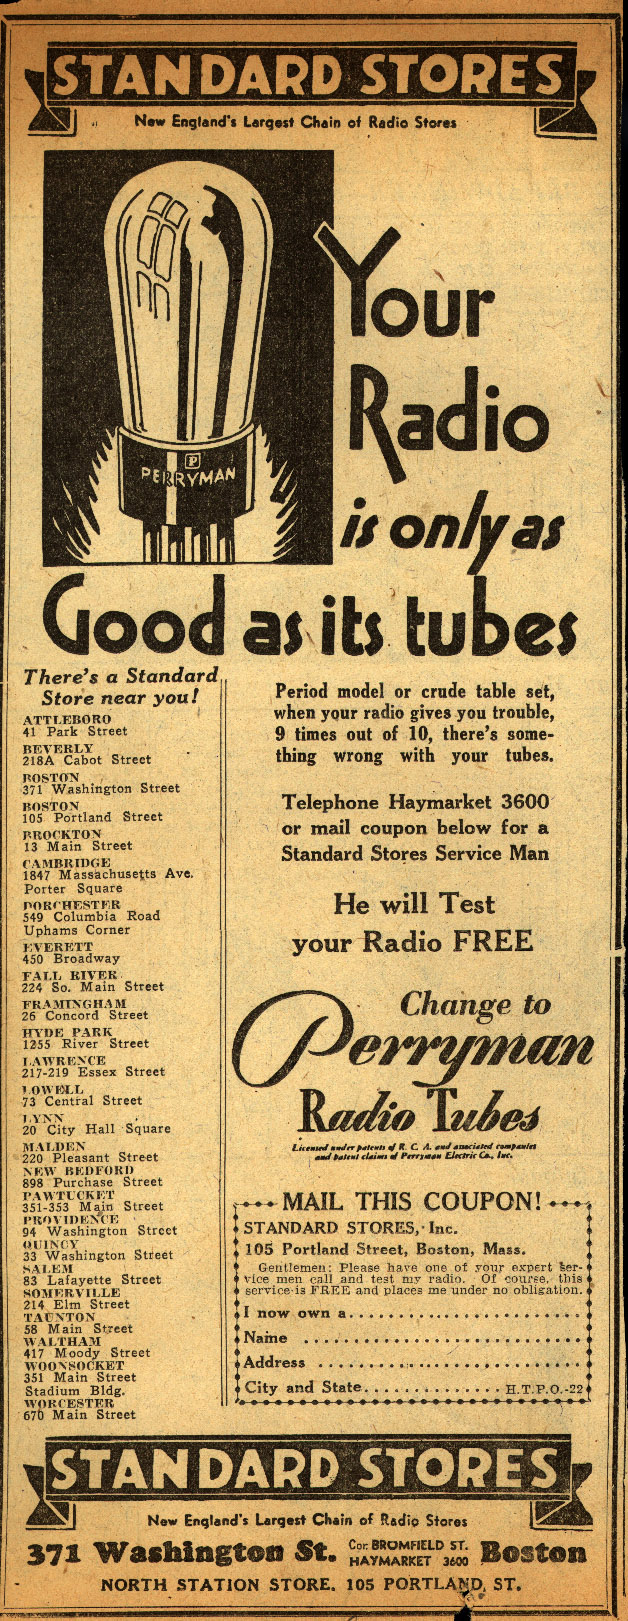 Standard_Stores_Your_Radio_is_only_as_Good_as_its_tubes